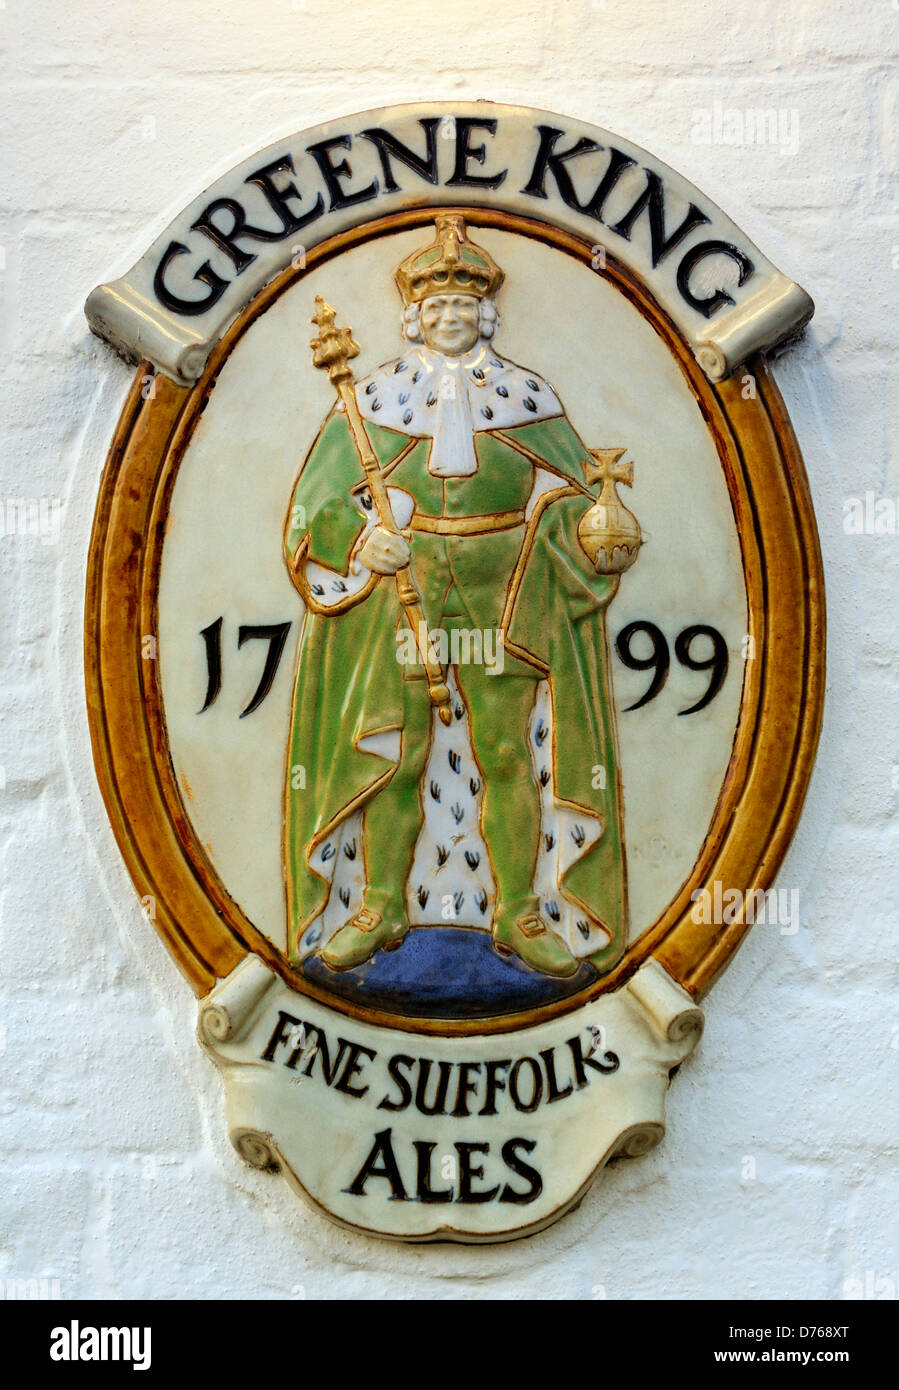 Trade mark pub wall plaque of the Bury St Edmunds based brewery Greene King. A major English beer producer - Stock Image